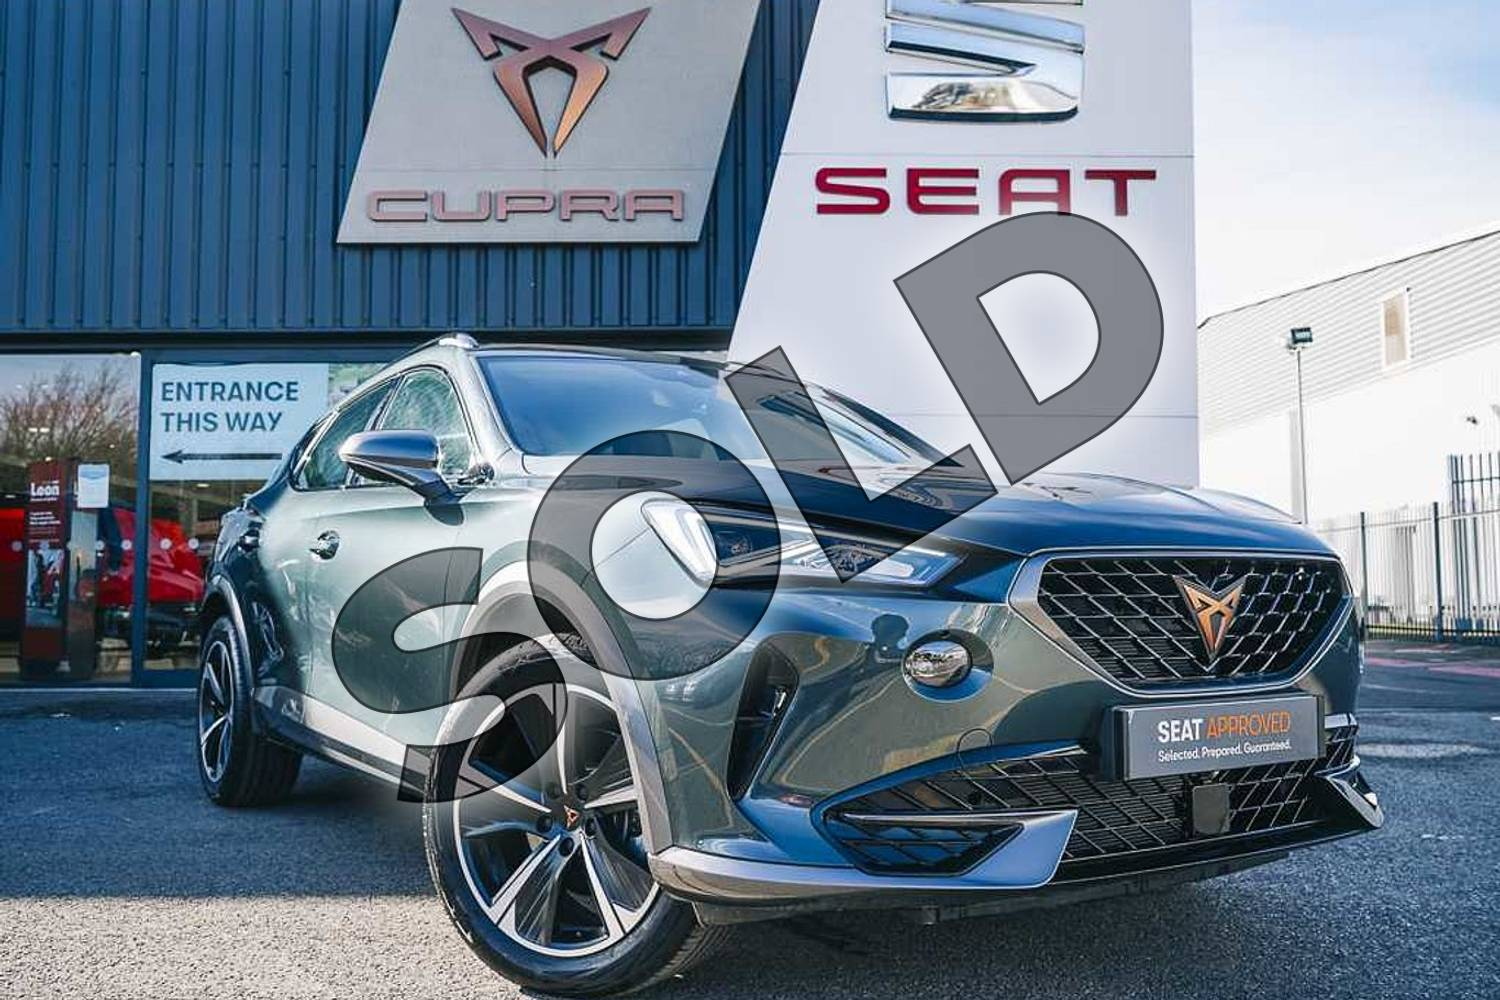 2021 Cupra Formentor Estate 1.5 TSI 150 V1 5dr DSG in Green at Listers SEAT Coventry